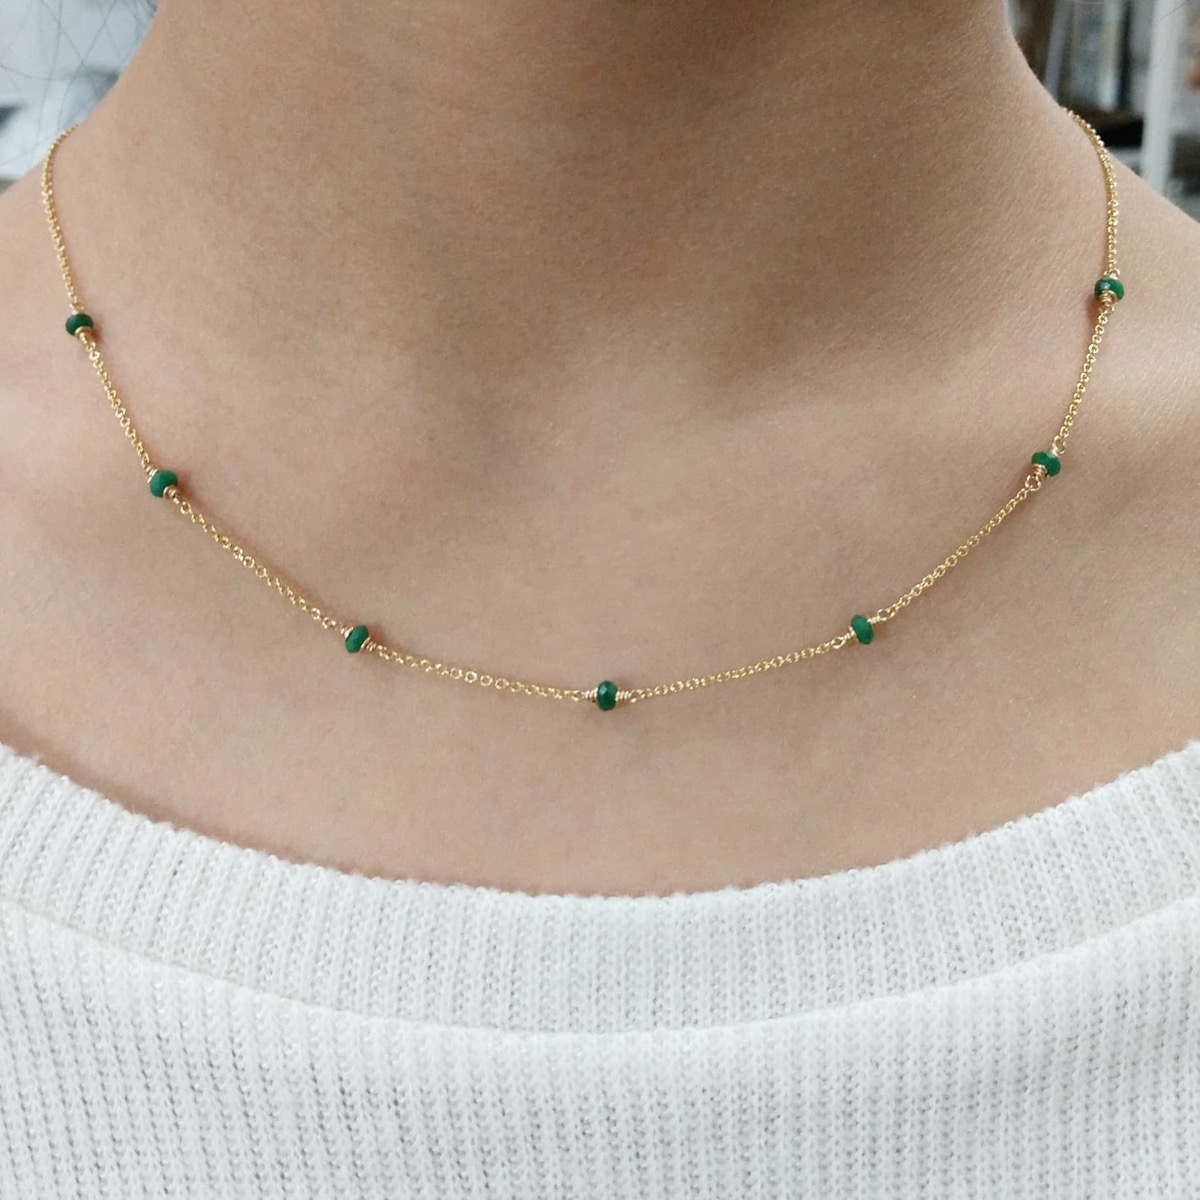 gold necklace with emeralds, Etsy jewelry